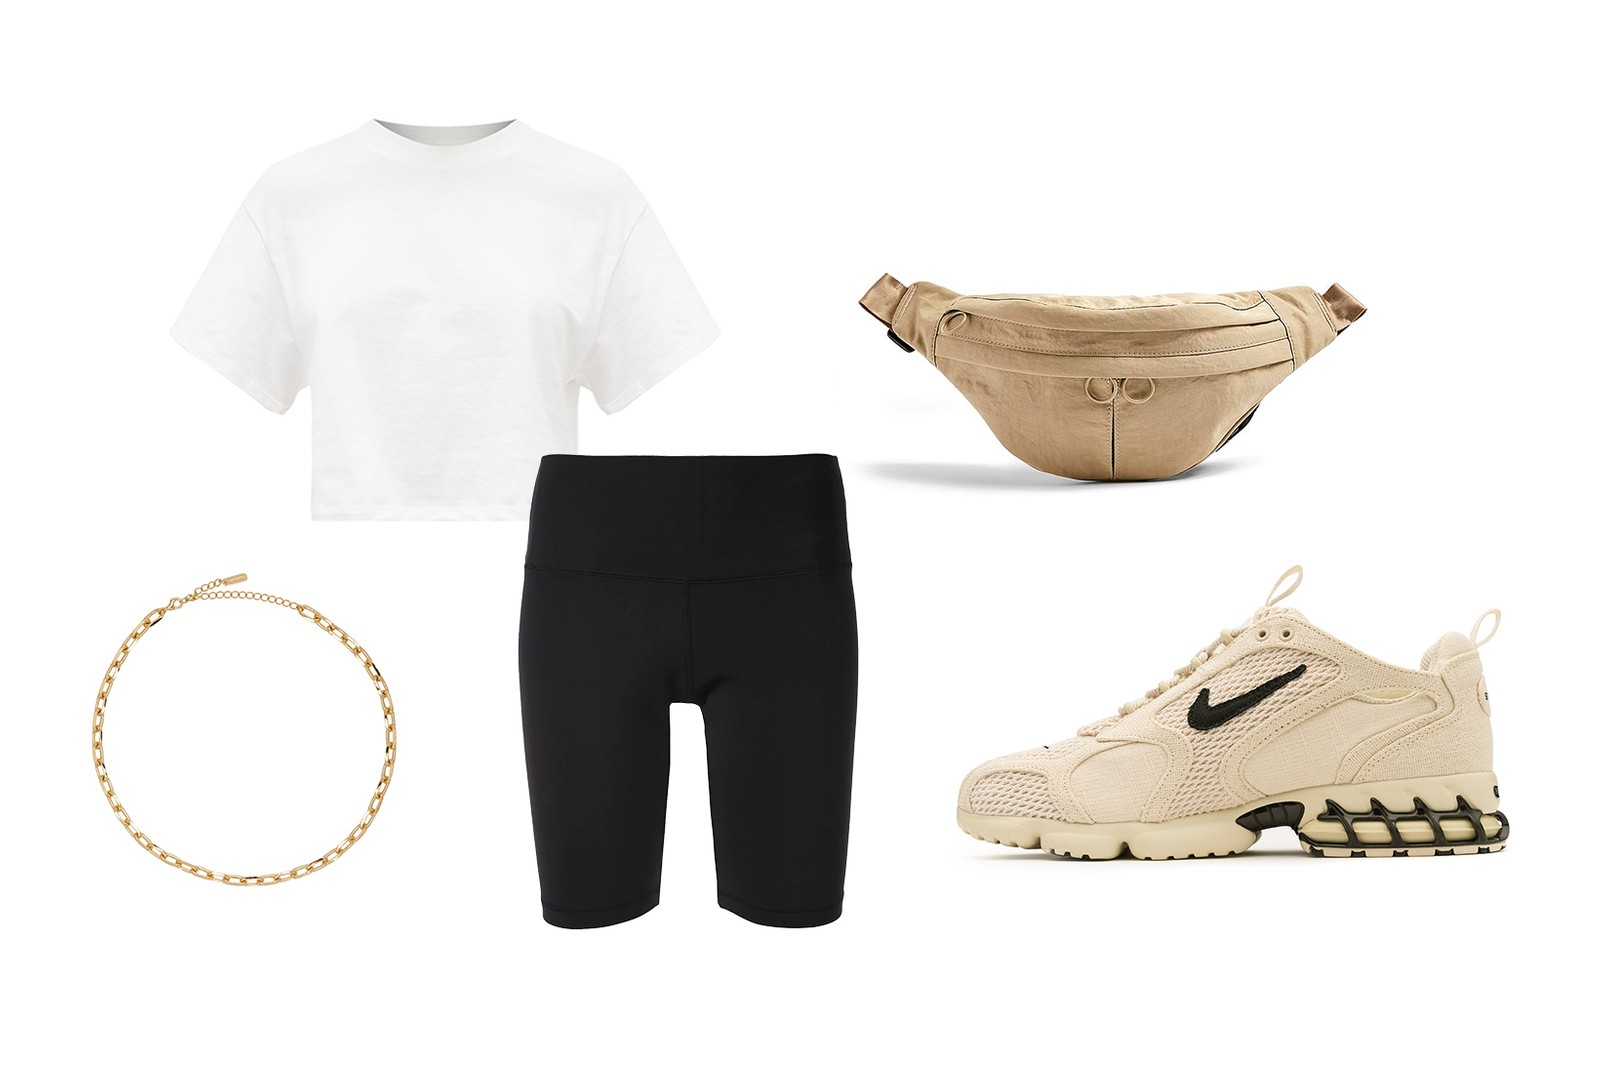 WARDROBE.NYC Release 02 Bike Shorts X Karla the Crop Cotton Jersey T-Shirt Topshop Babs Double Pocket Nylon Bumbag Numbering Gold Chain Necklace Stussy Nike Air Spiridin Cage 2 Fossil